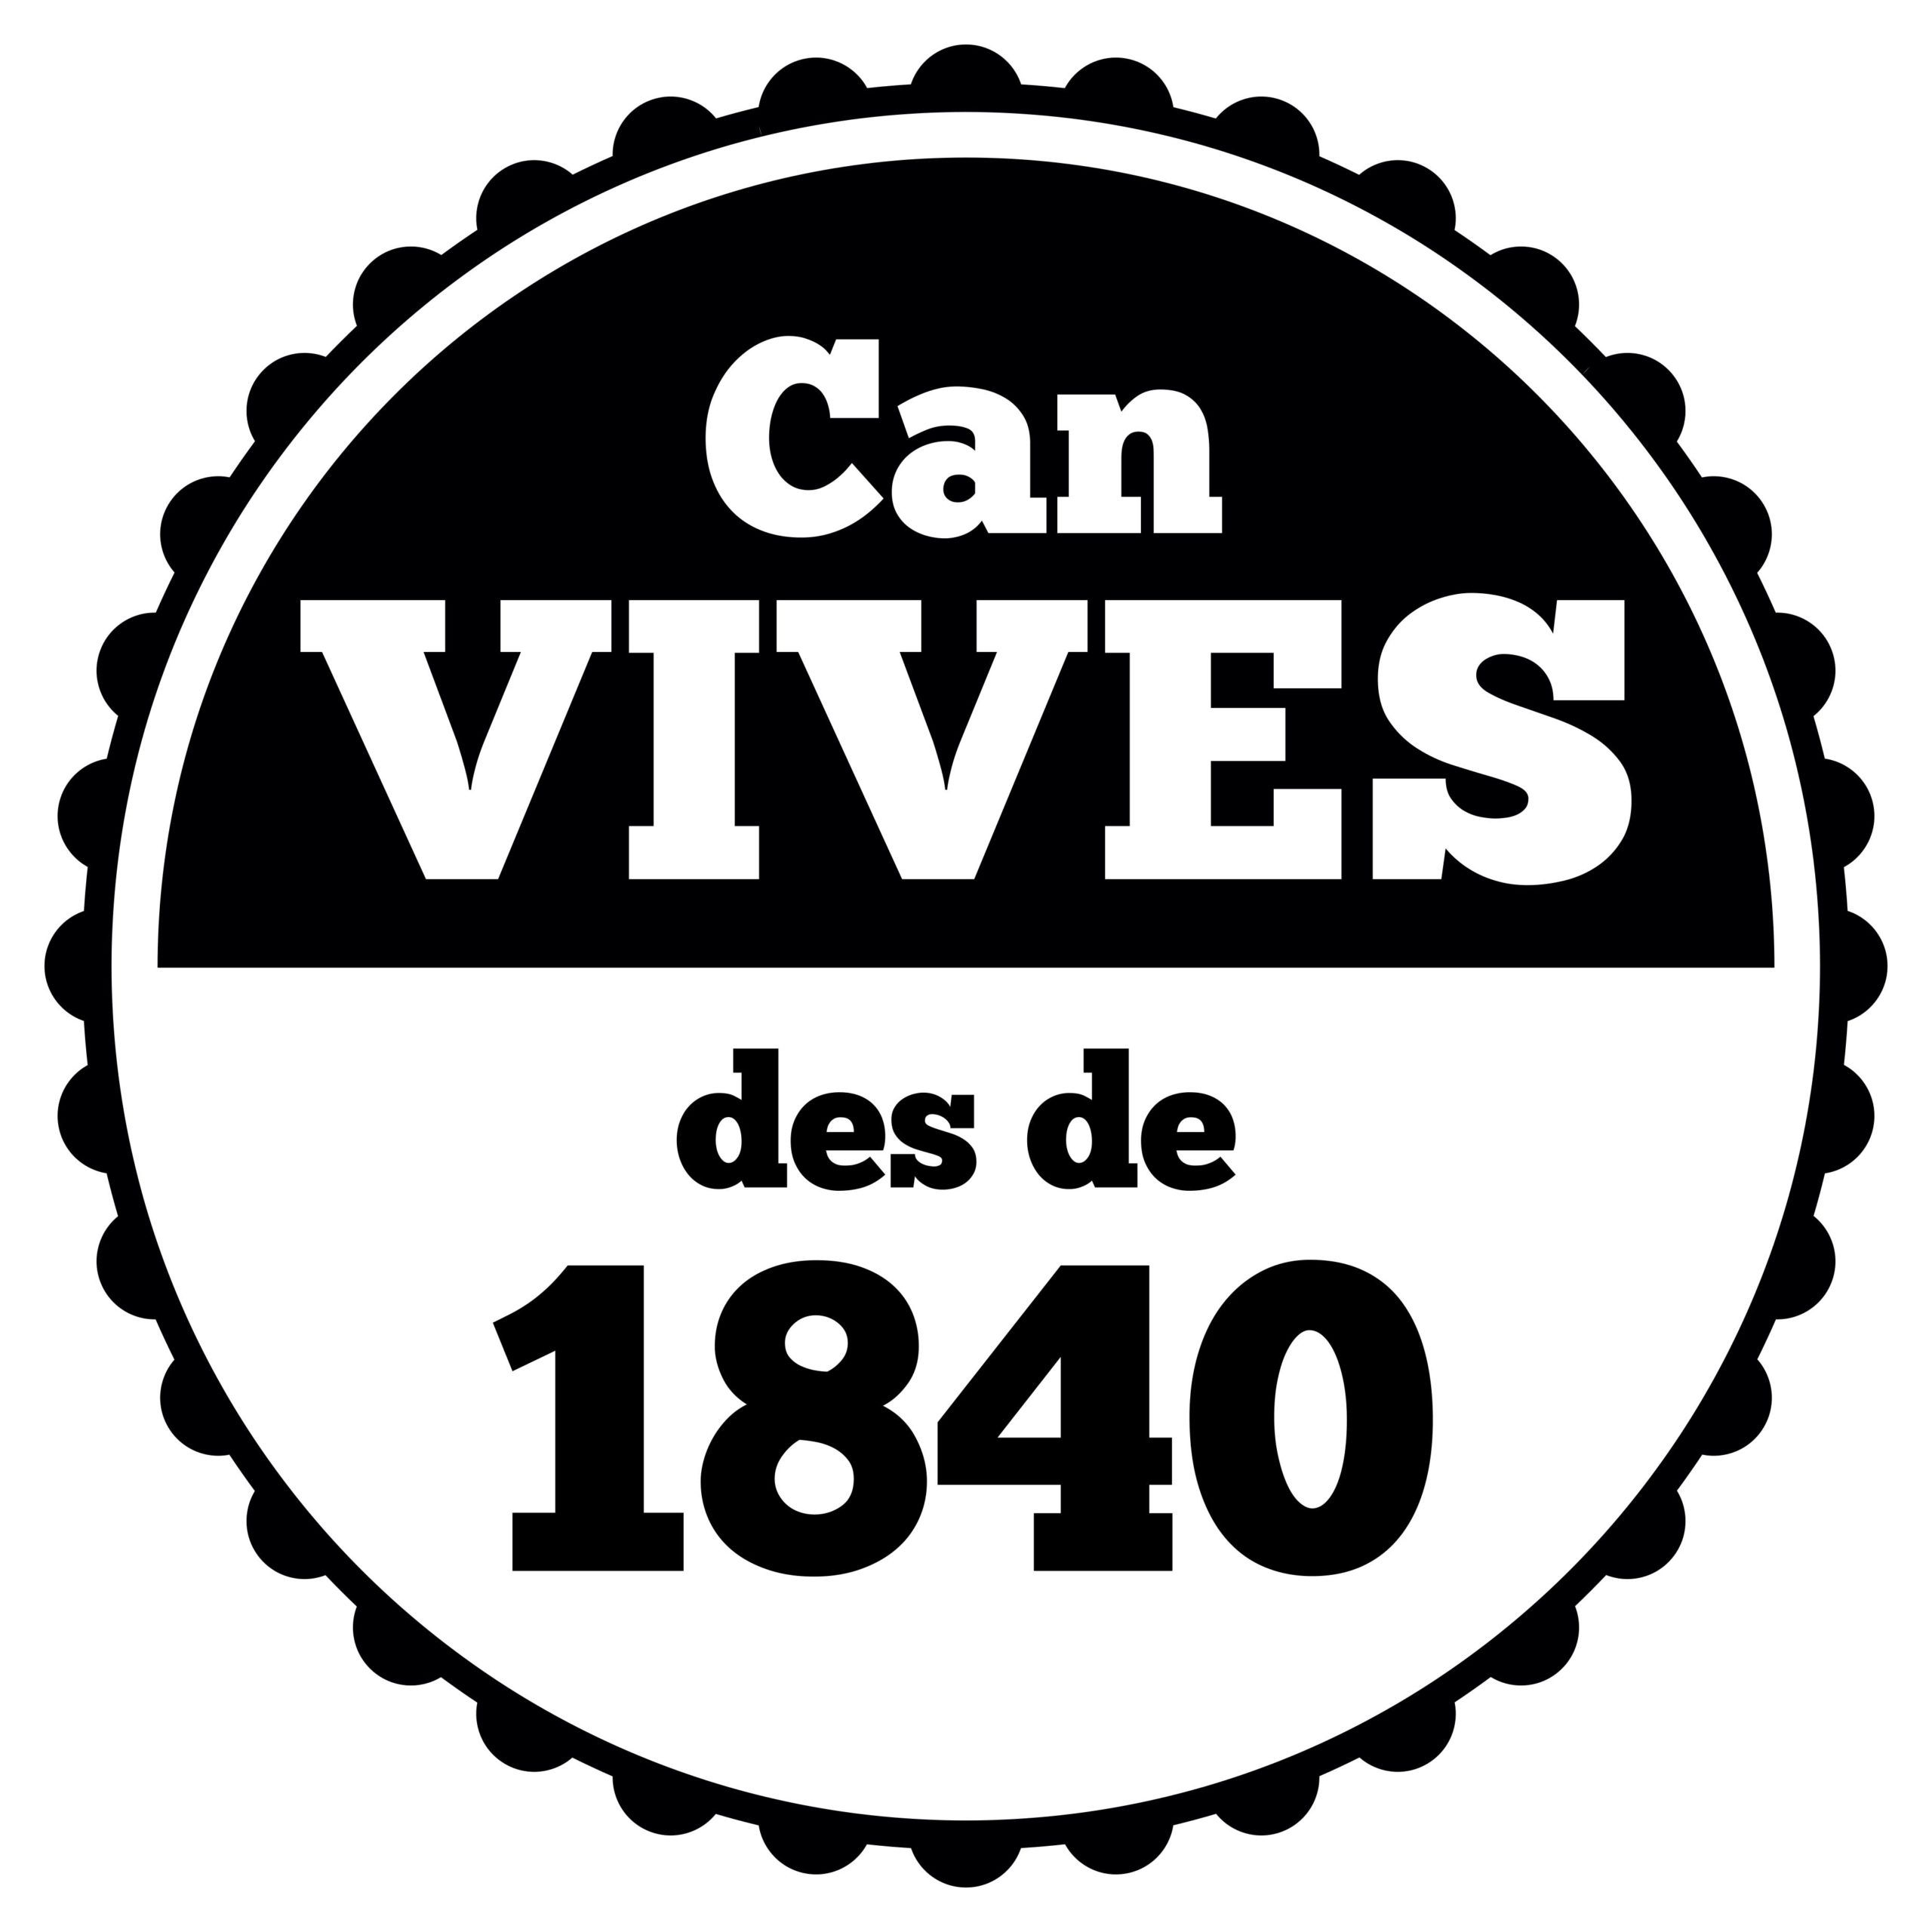 Can Vives carnissers des de 1840